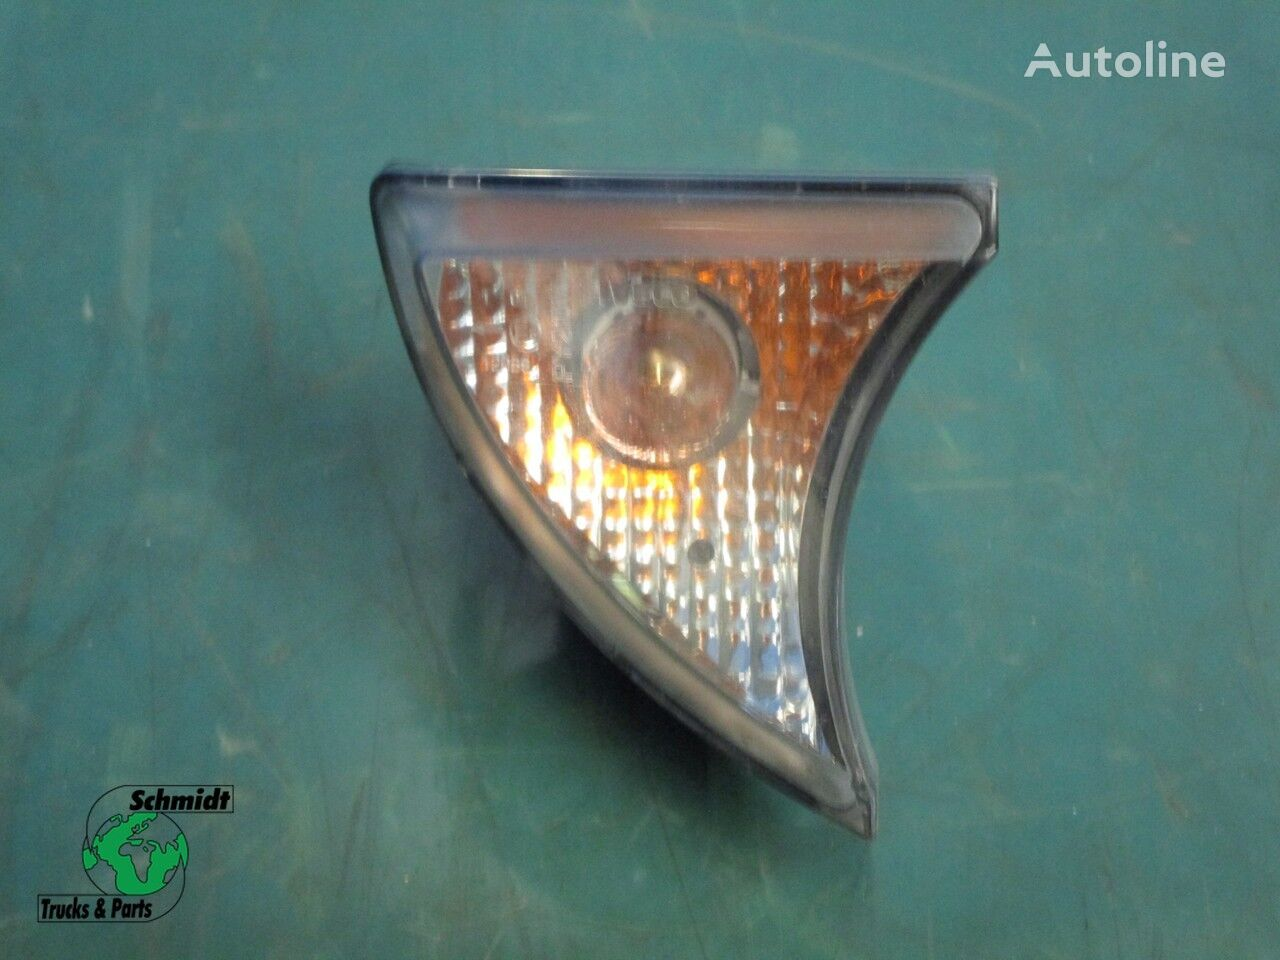 IVECO Lamp 5801755107 headlight for truck